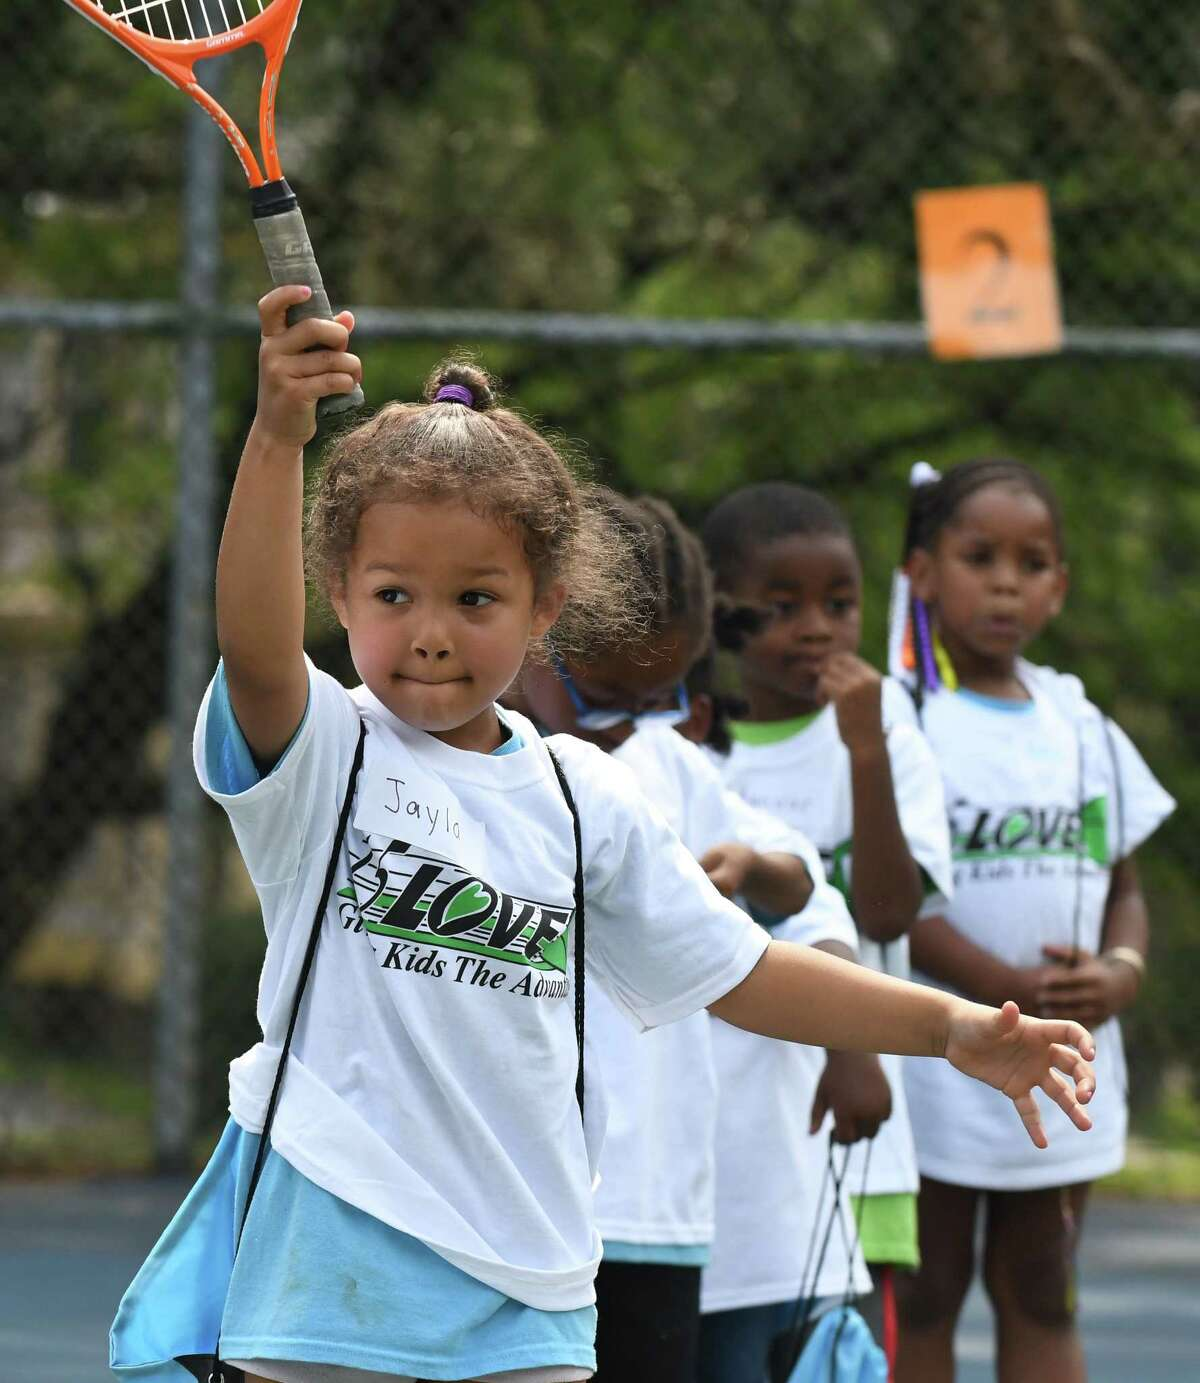 Jayla Ryan lines up a shot during a 15-Love tennis camp at Washington Park on Thursday, Aug. 10, 2017, in Albany, N.Y. The not-for-profit youth tennis program, which serves more than 1,900 inner-city children in the cities of Albany, Troy, Schenectady and Rensselaer throughout the summer, held its 28th annual summer Jamboree. (Will Waldron/Times Union)